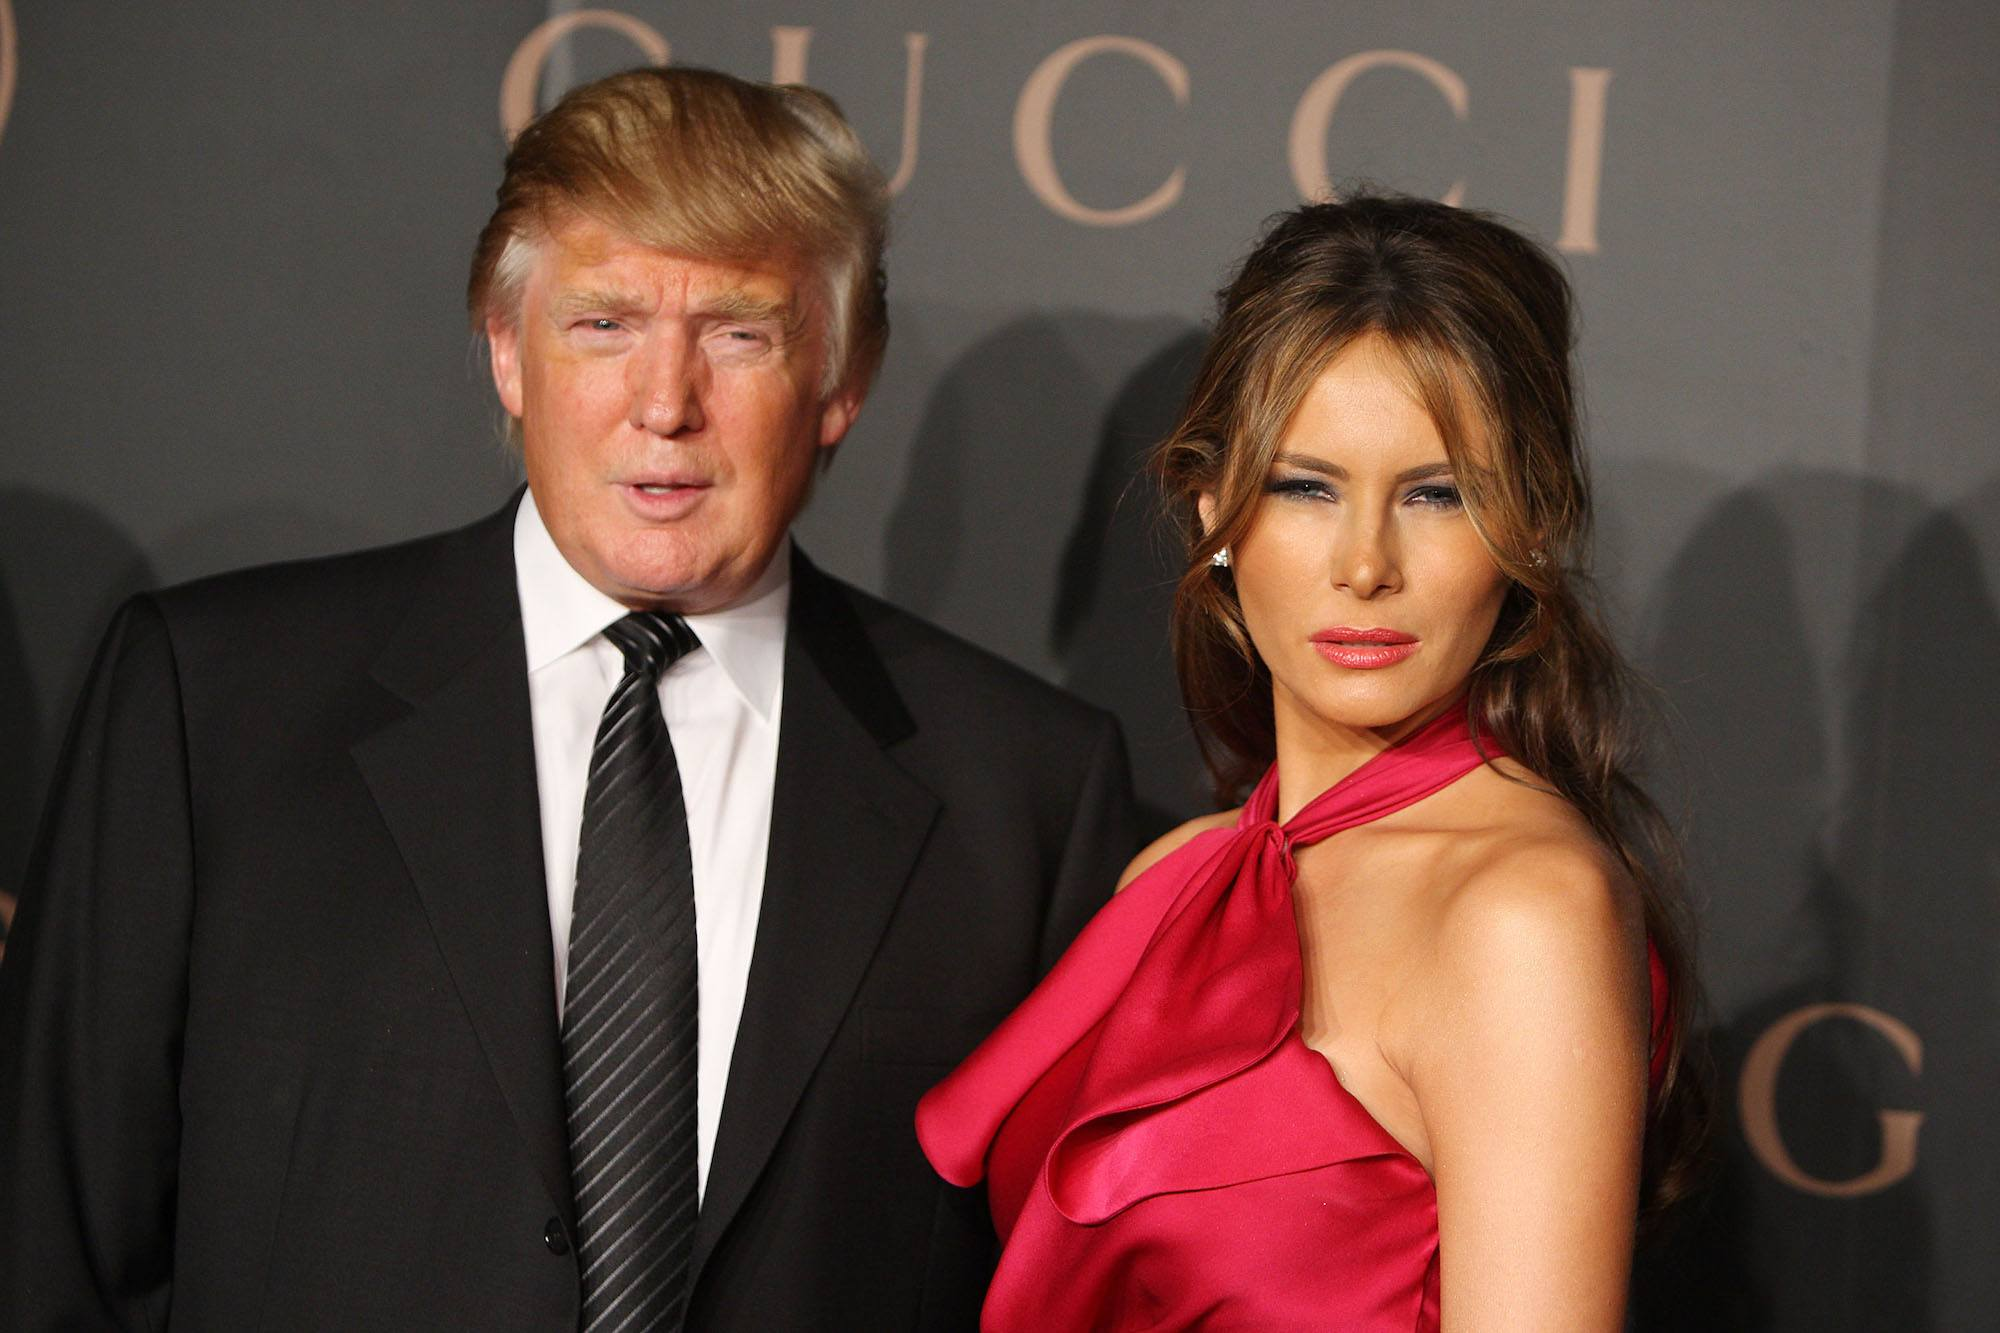 Donald Trump and Melania Trump attend a reception to benefit UNICEF in 2008